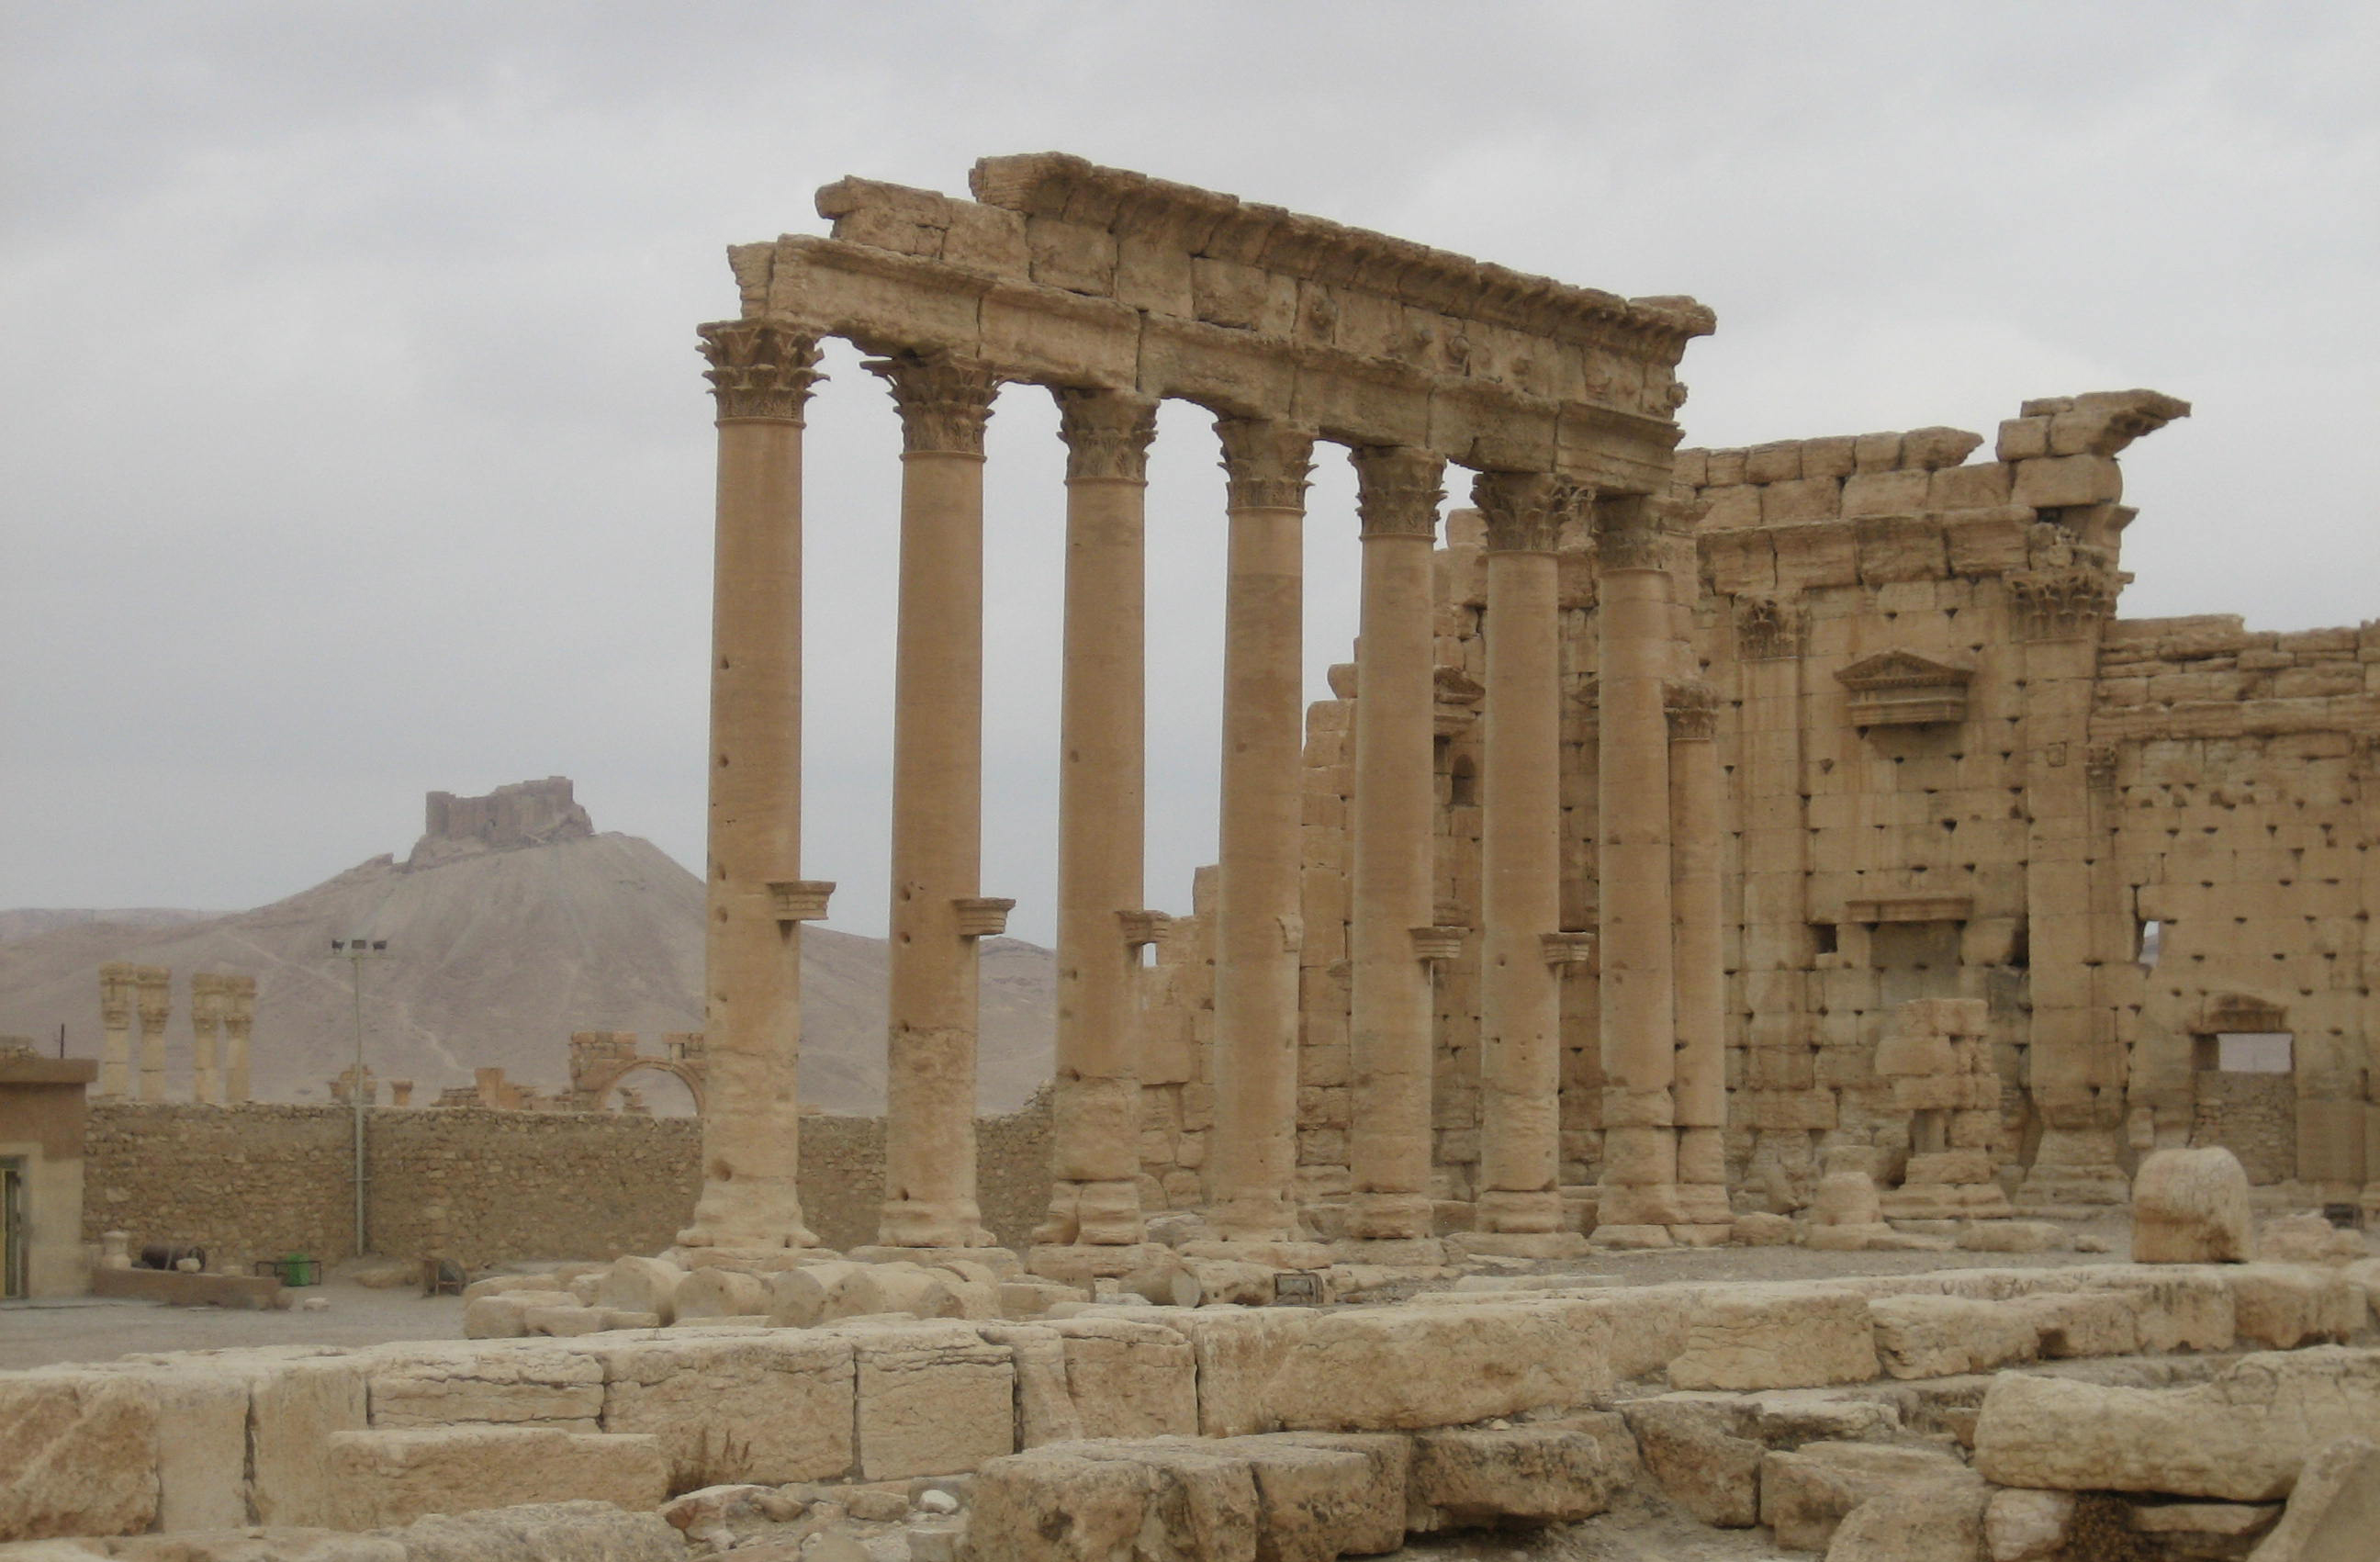 Figure 4: Palmyra, Temple of Bel (foreground) and Qalaat Shirkuh (background) (photo by Tate Paulette, 2005)